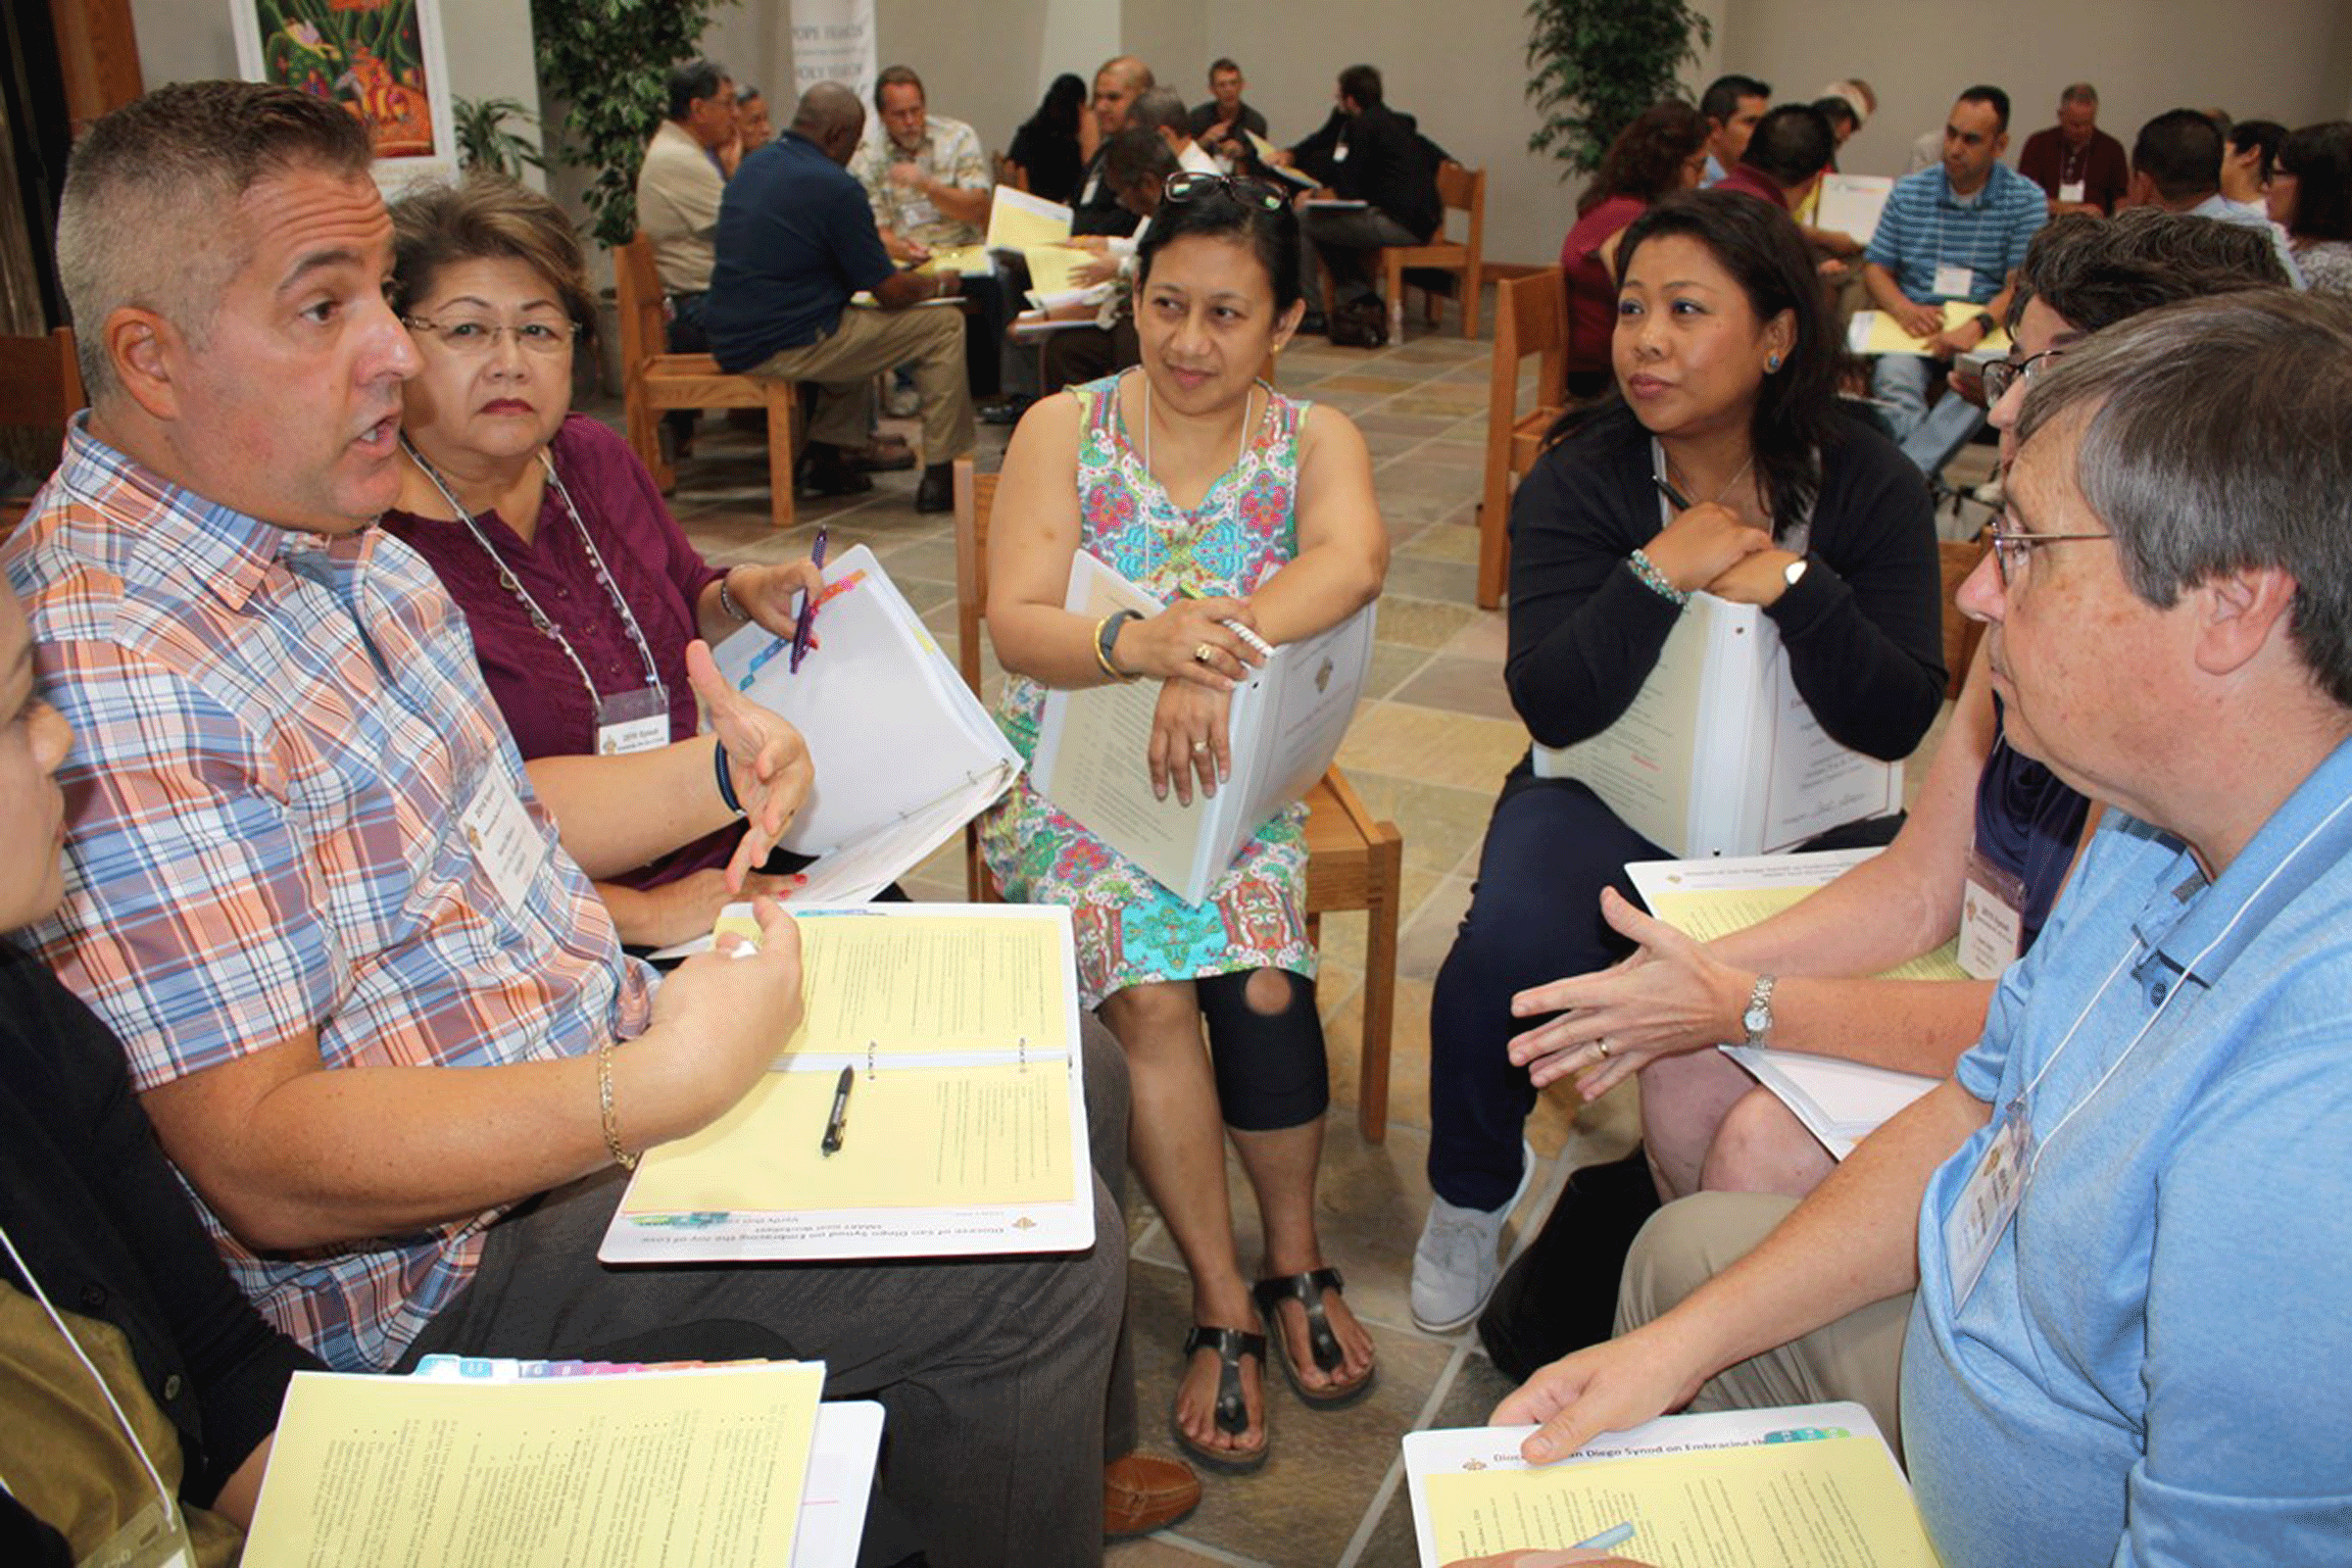 A small group meeting during the San Diego synod (photo: courtesy of Diocese of San Diego/Aida Bustos)